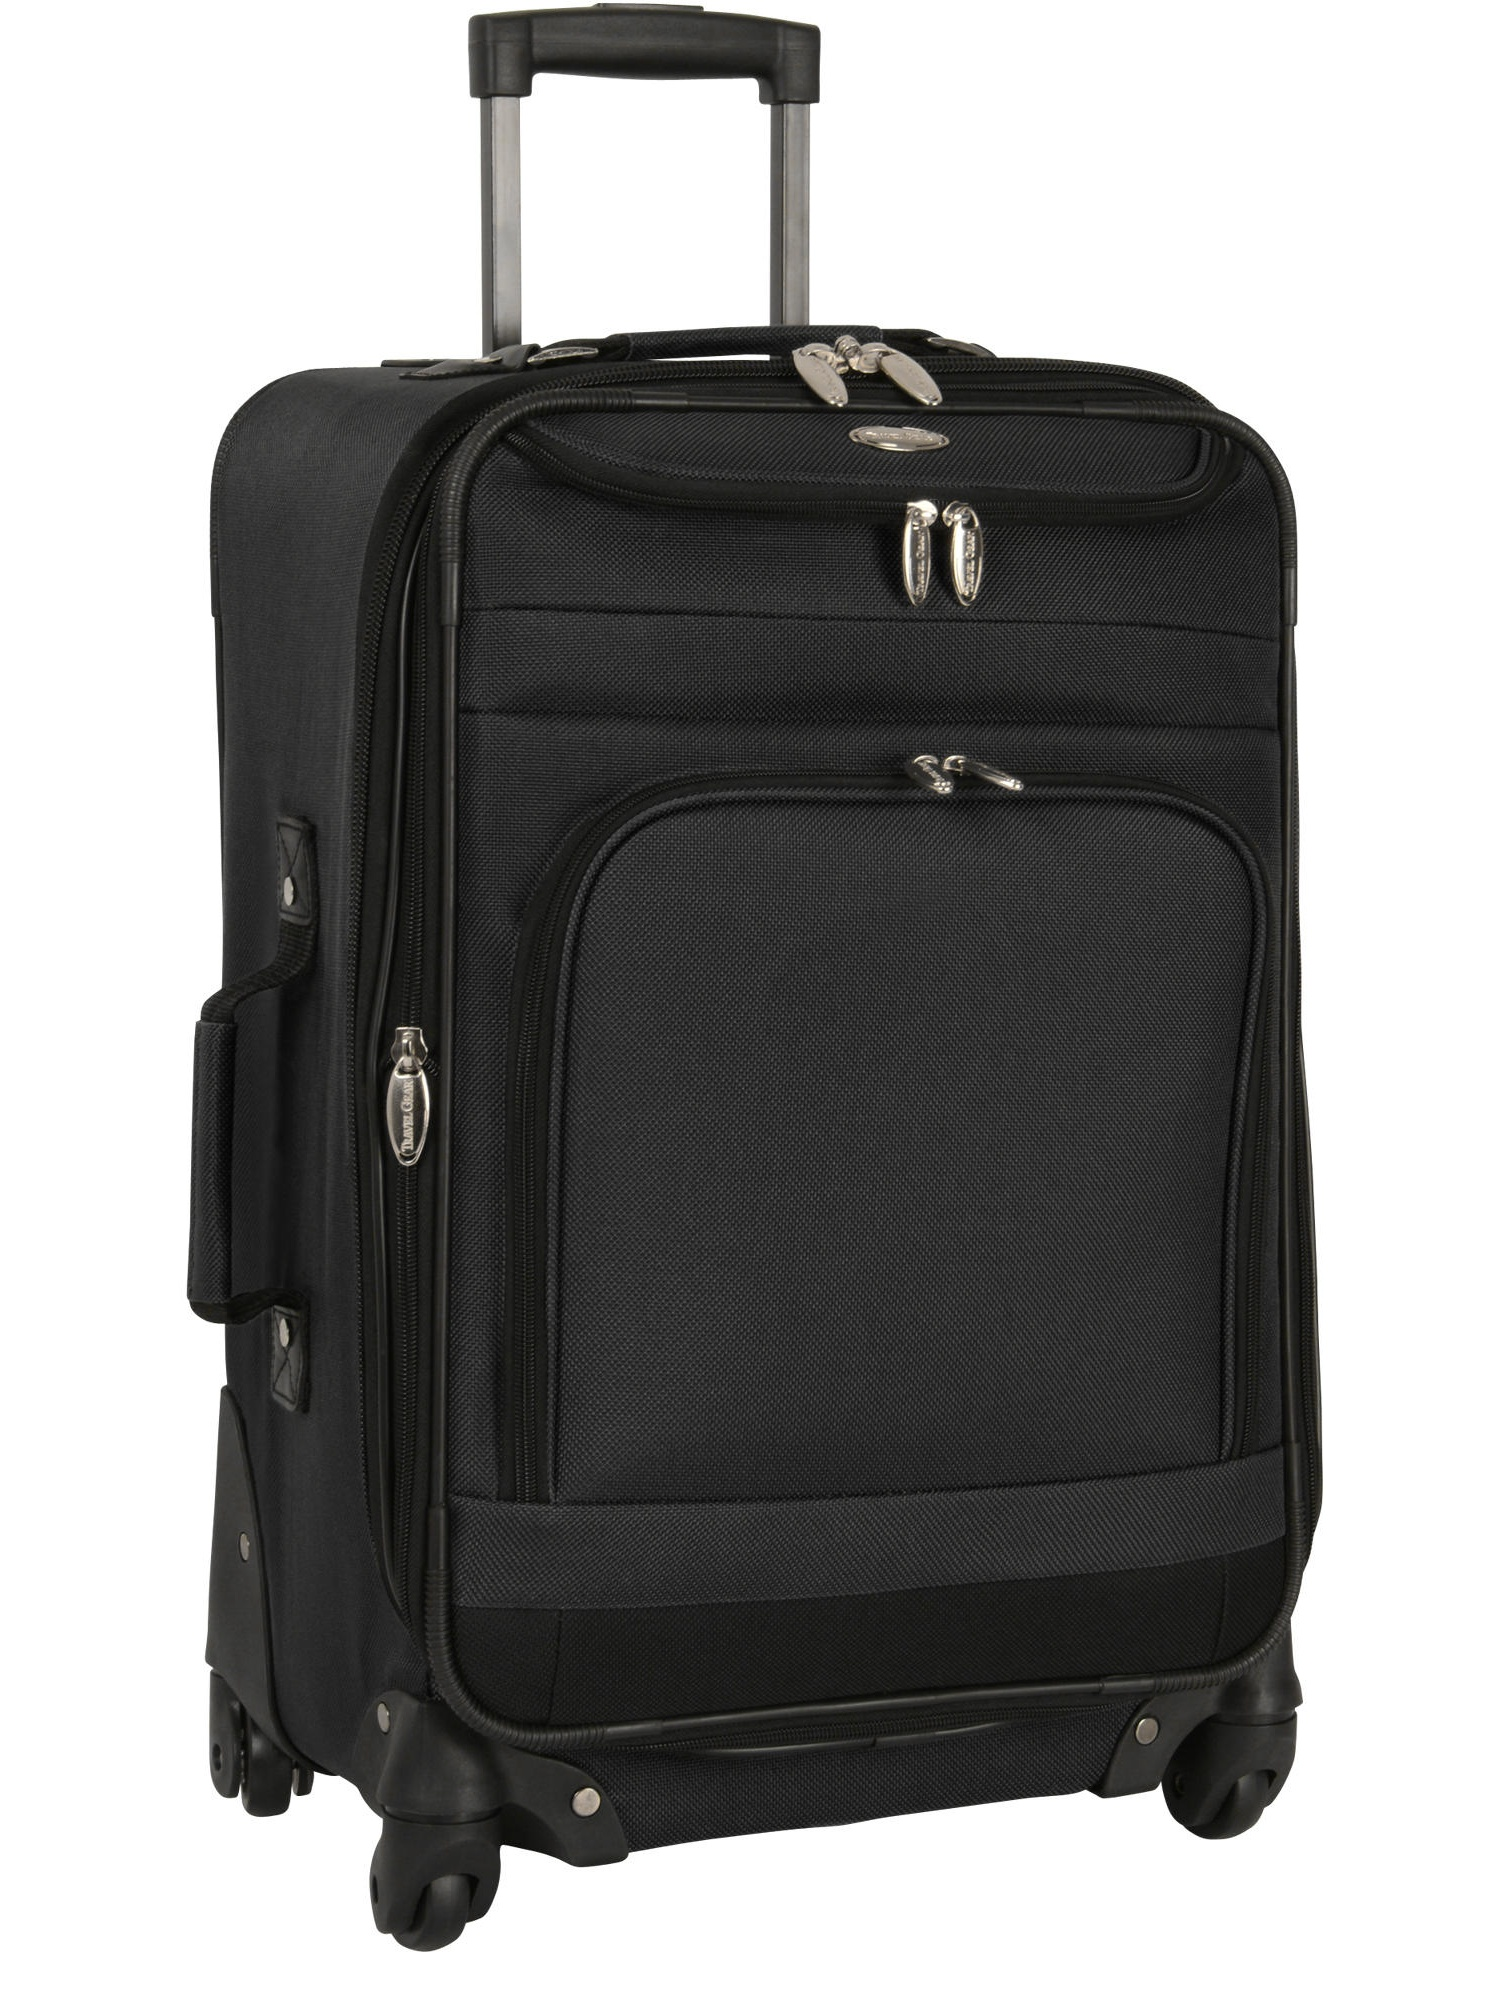 """Travel Gear 20"""" Carry-On 4Wheel Spinner Luggage"""